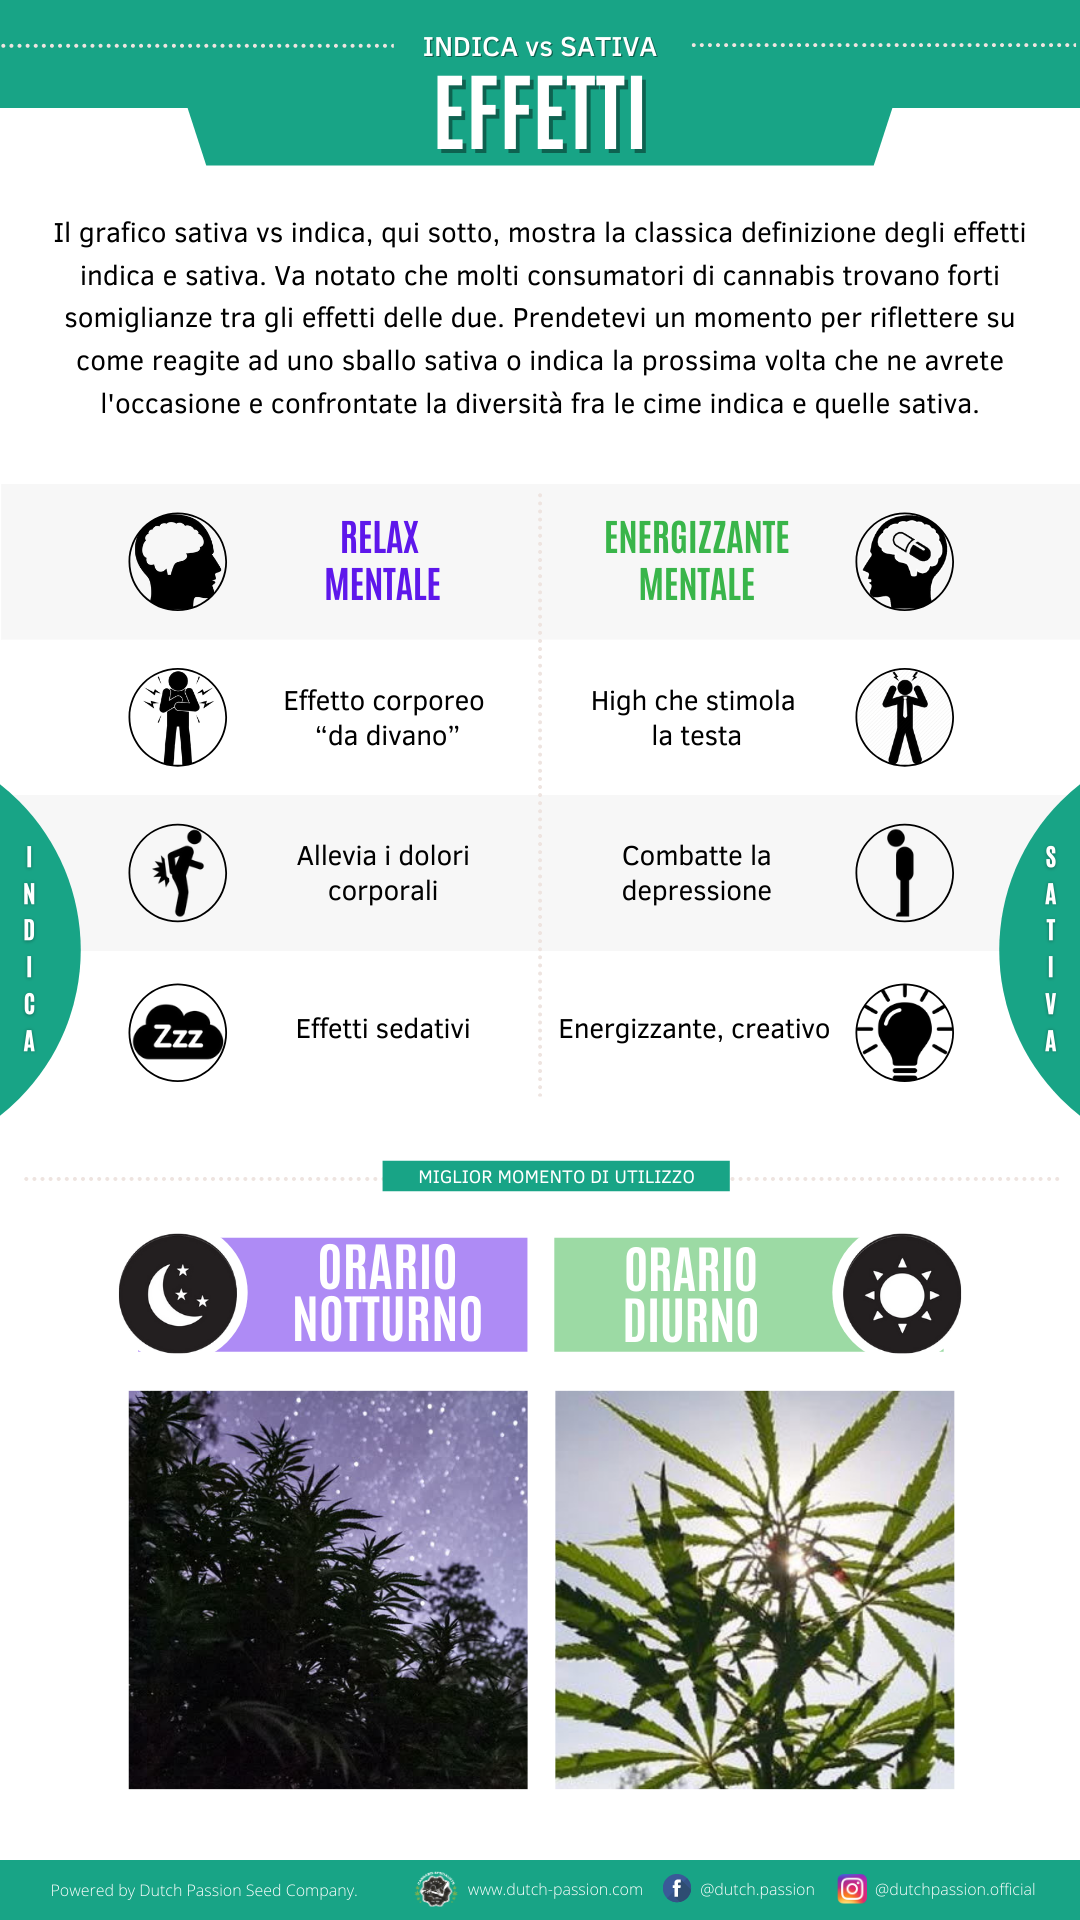 Indica vs Sativa effects